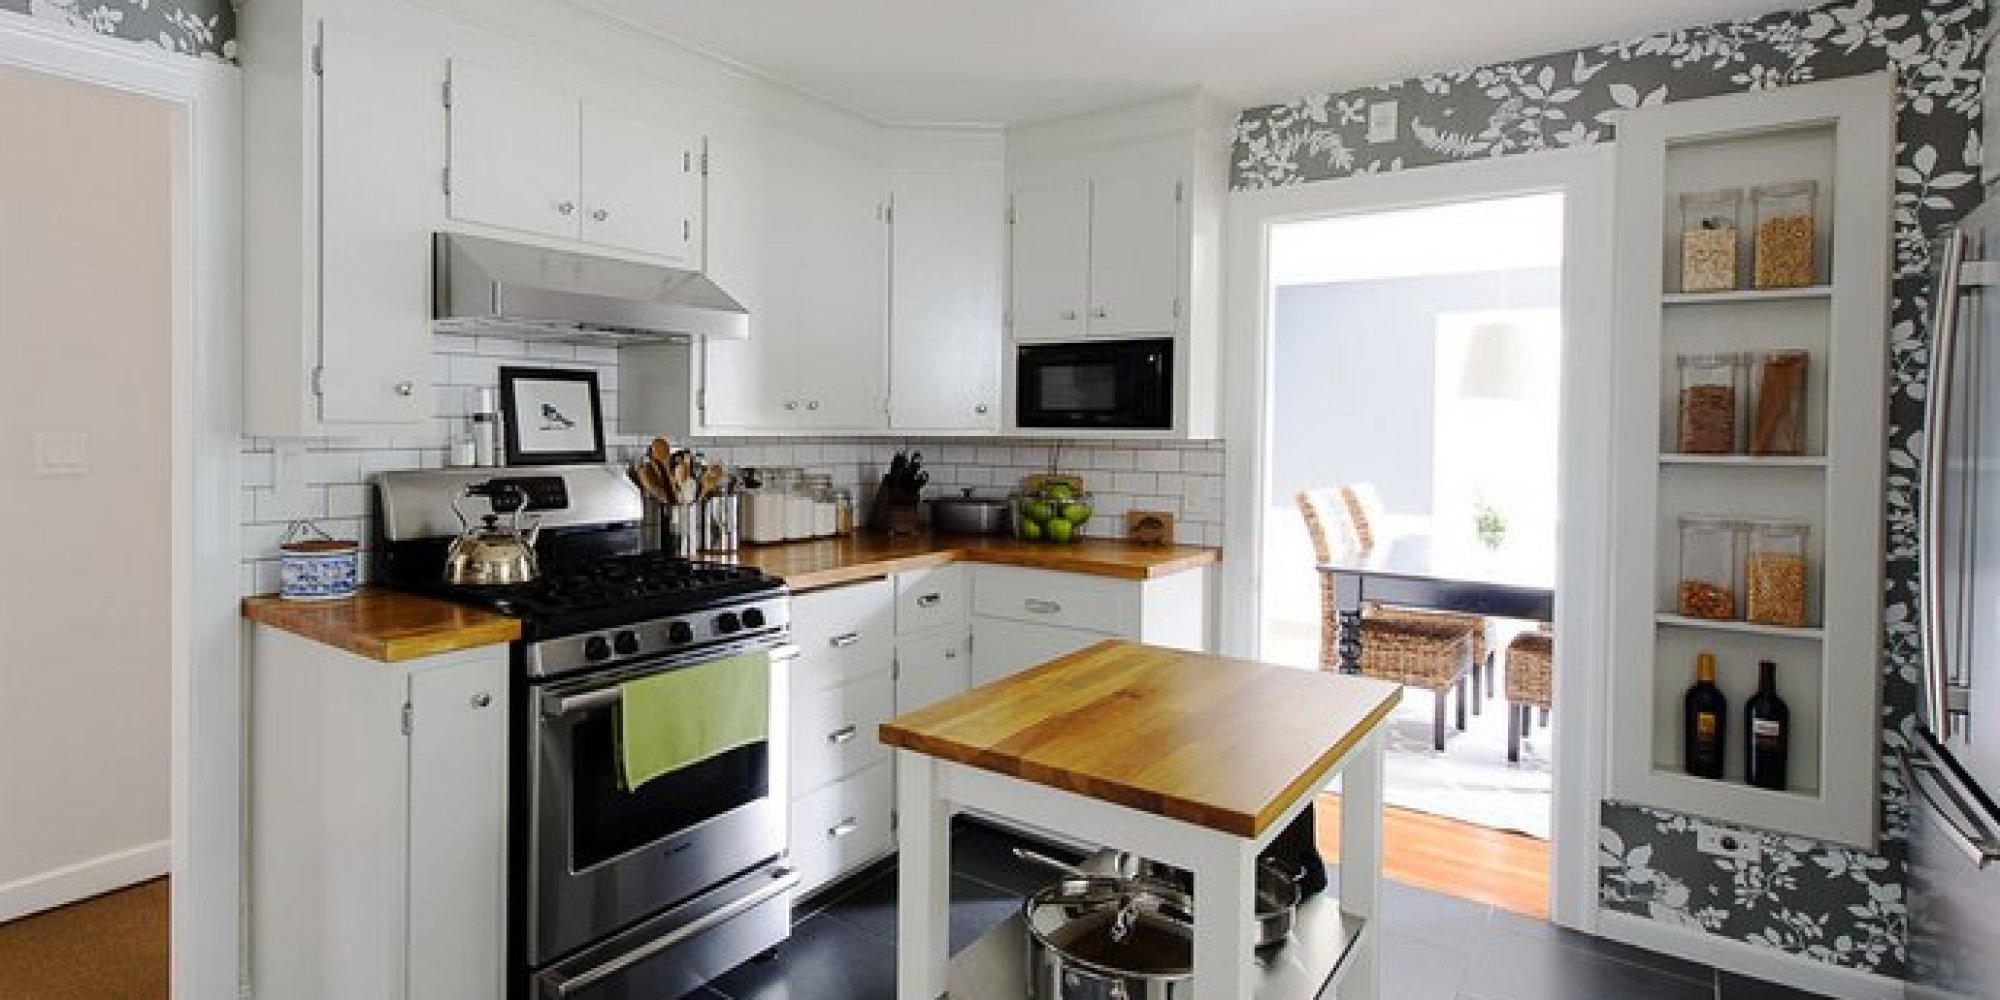 Kitchen Updates 19 inexpensive ways to fix up your kitchen (photos) | huffpost